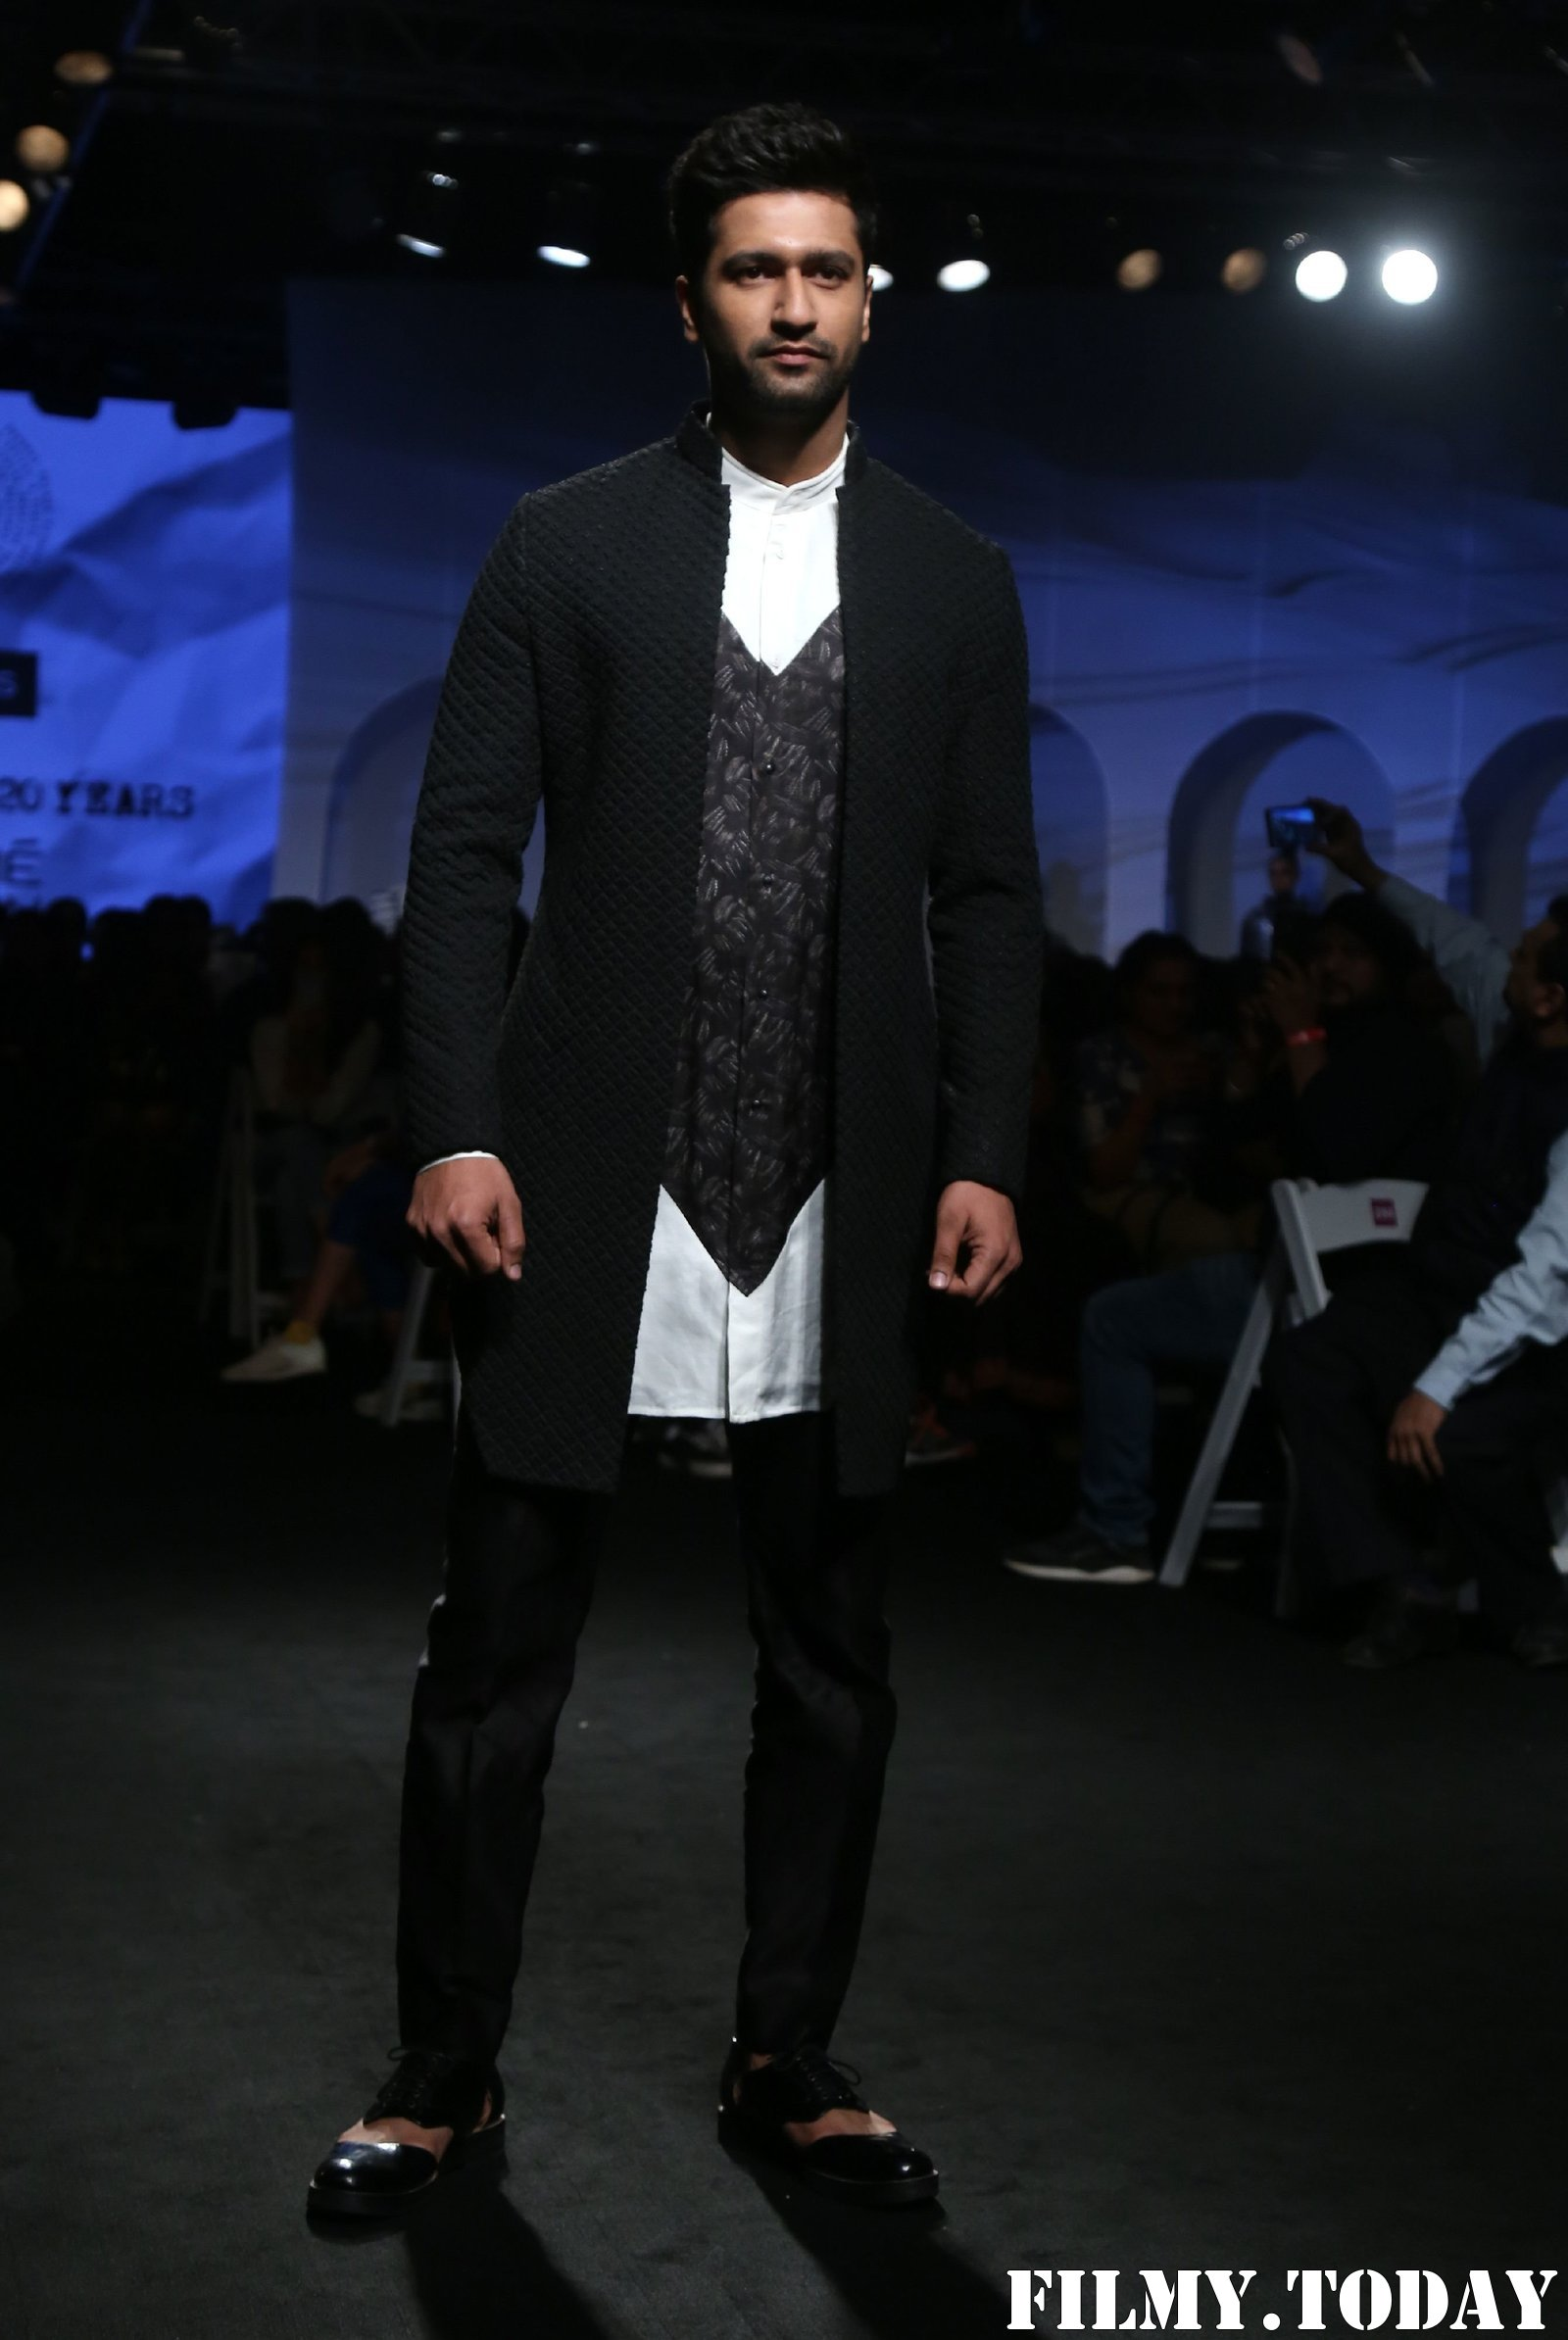 Vicky Kaushal - Photos: Opening Show Of Lakme Fashion Week 2020 At Jio Garden | Picture 1720084